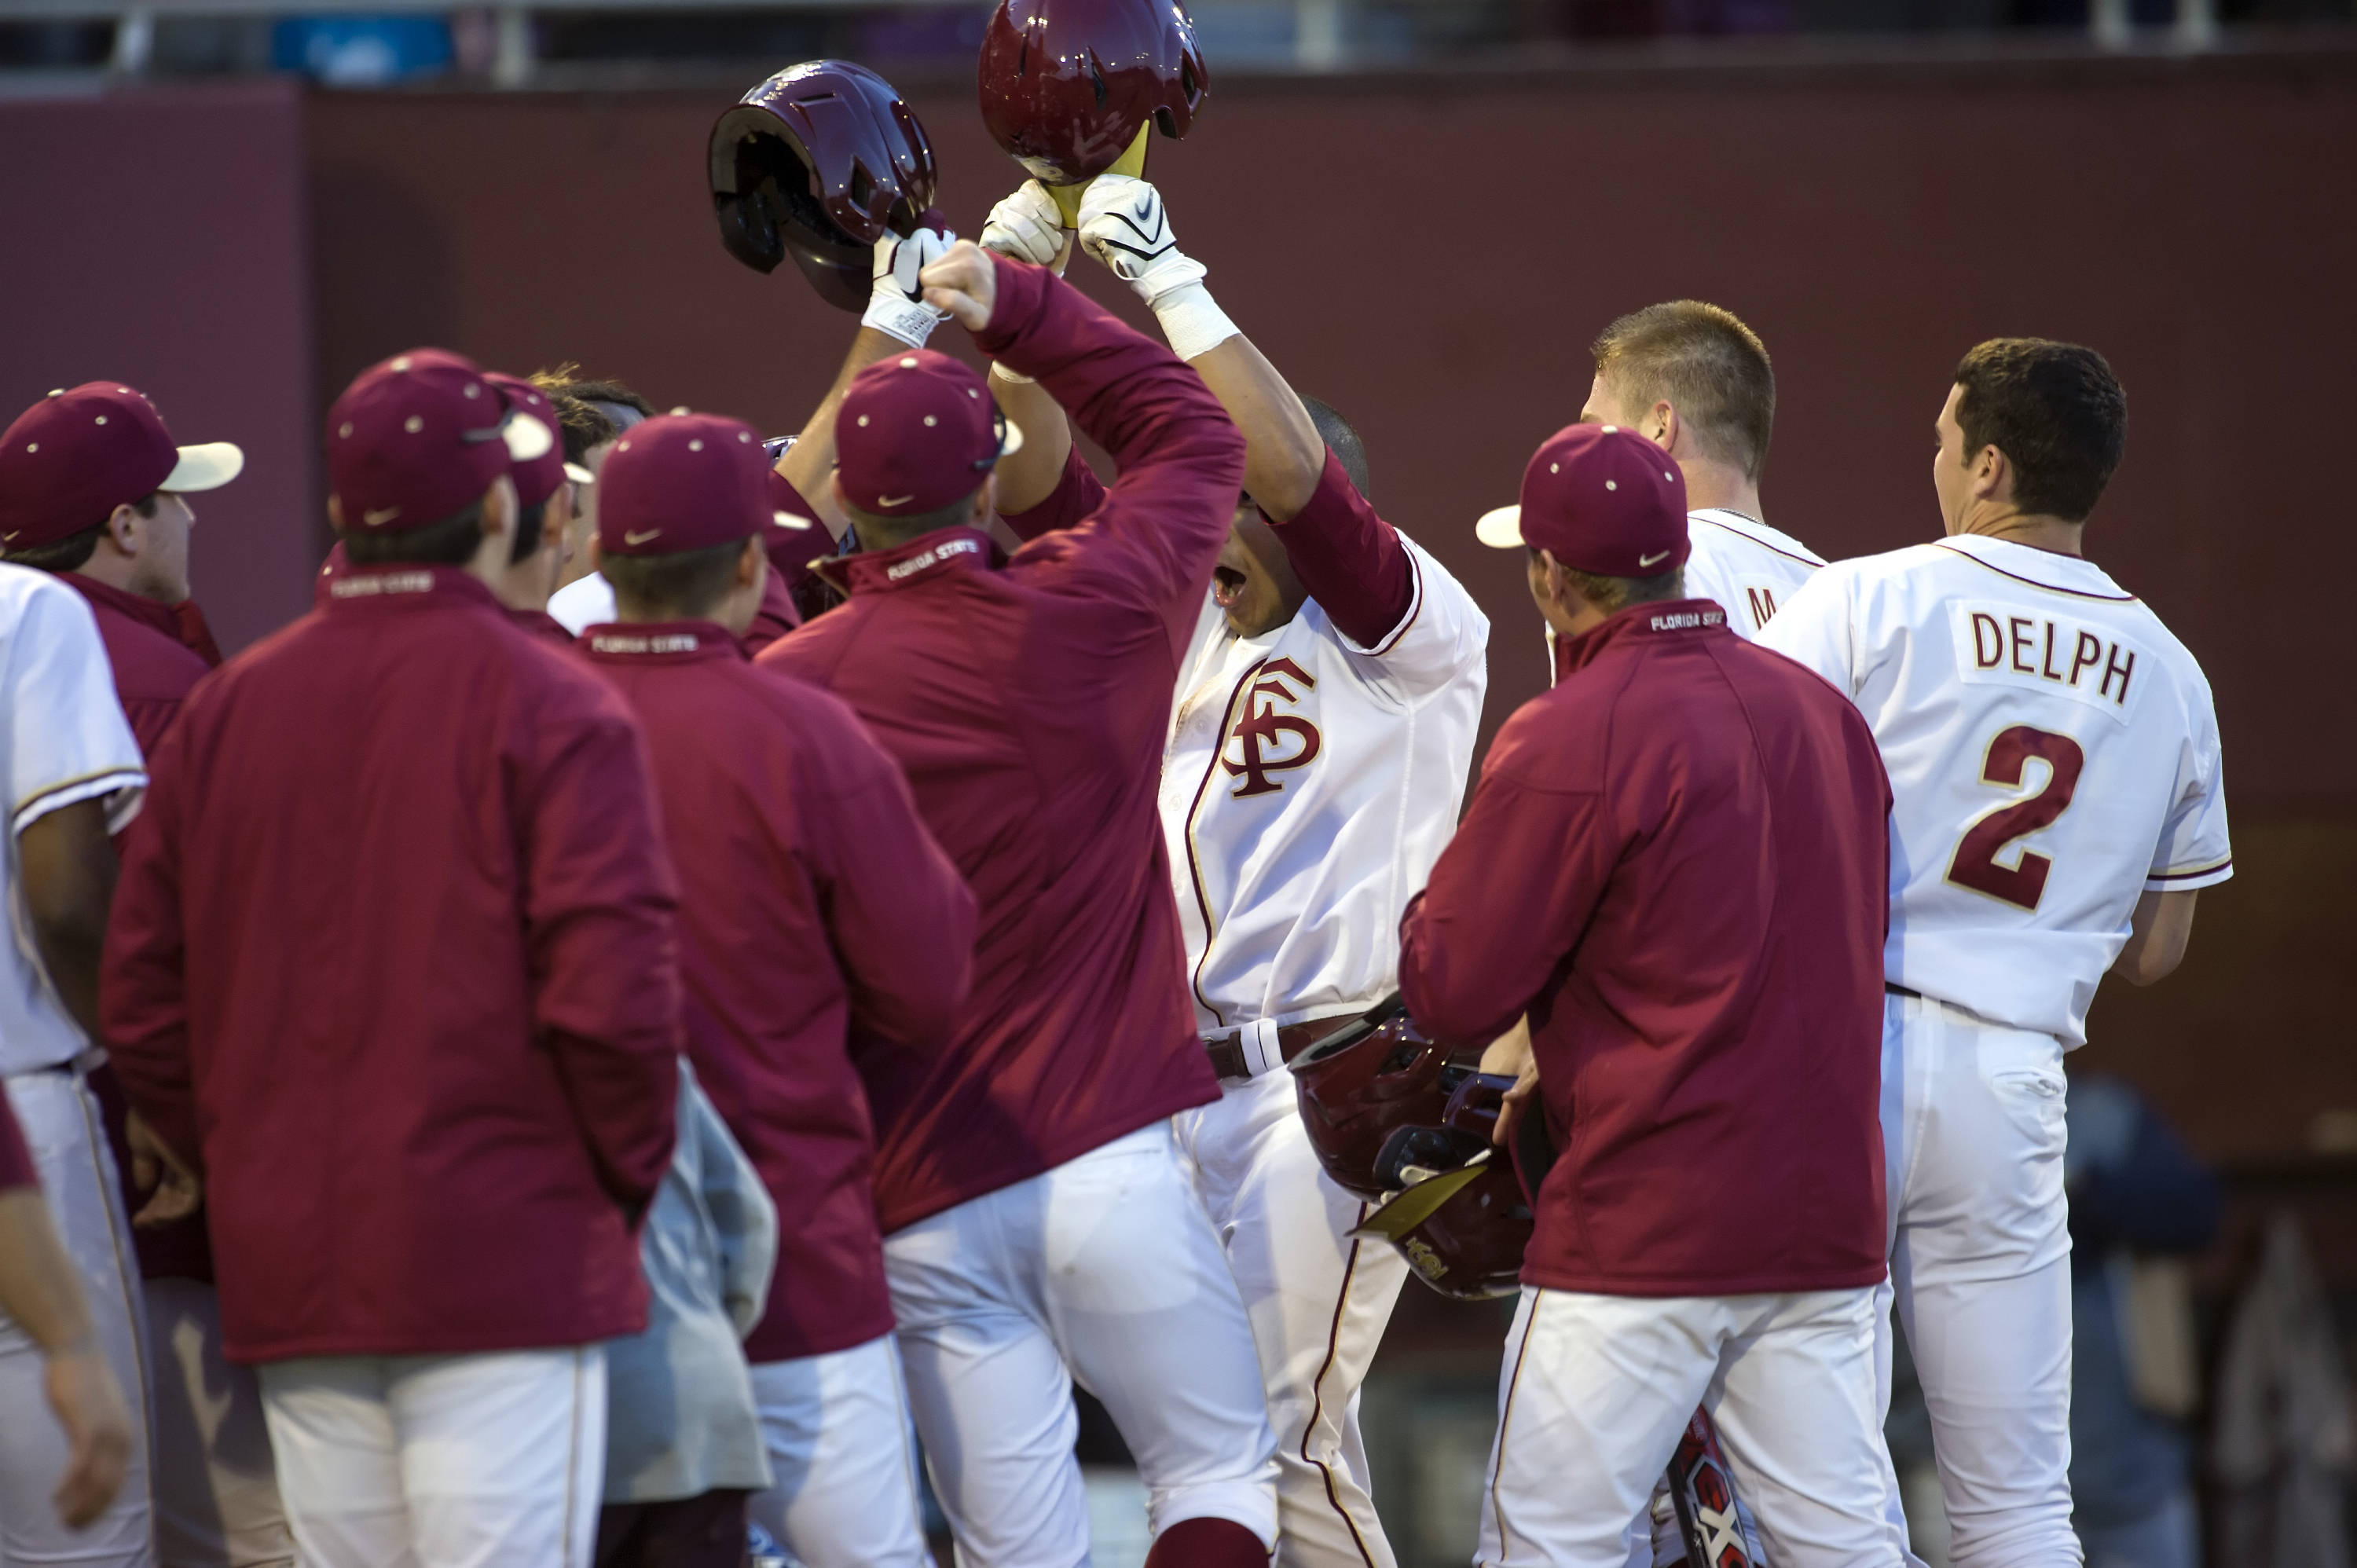 The Seminoles celebrate at the plate after Jose Brizuela's sixth inning grand slam.